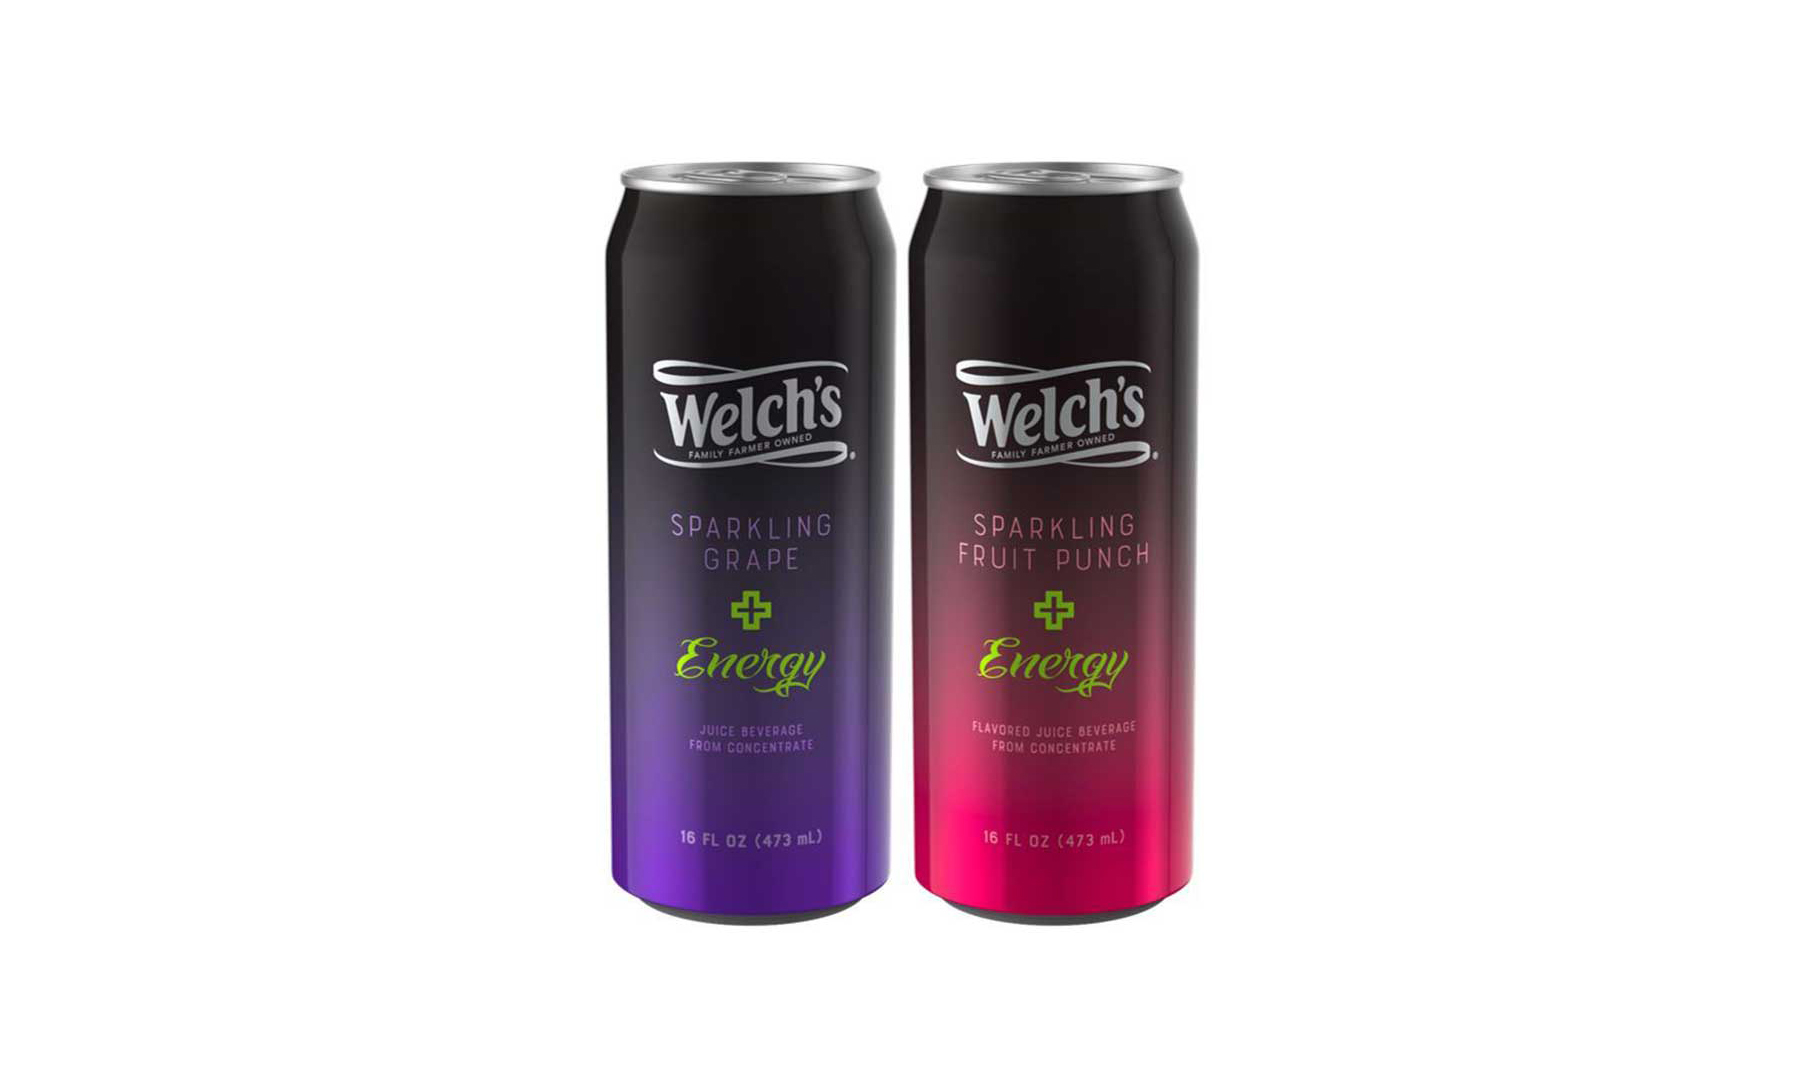 Welch's Sparkling Plus Energy drinks